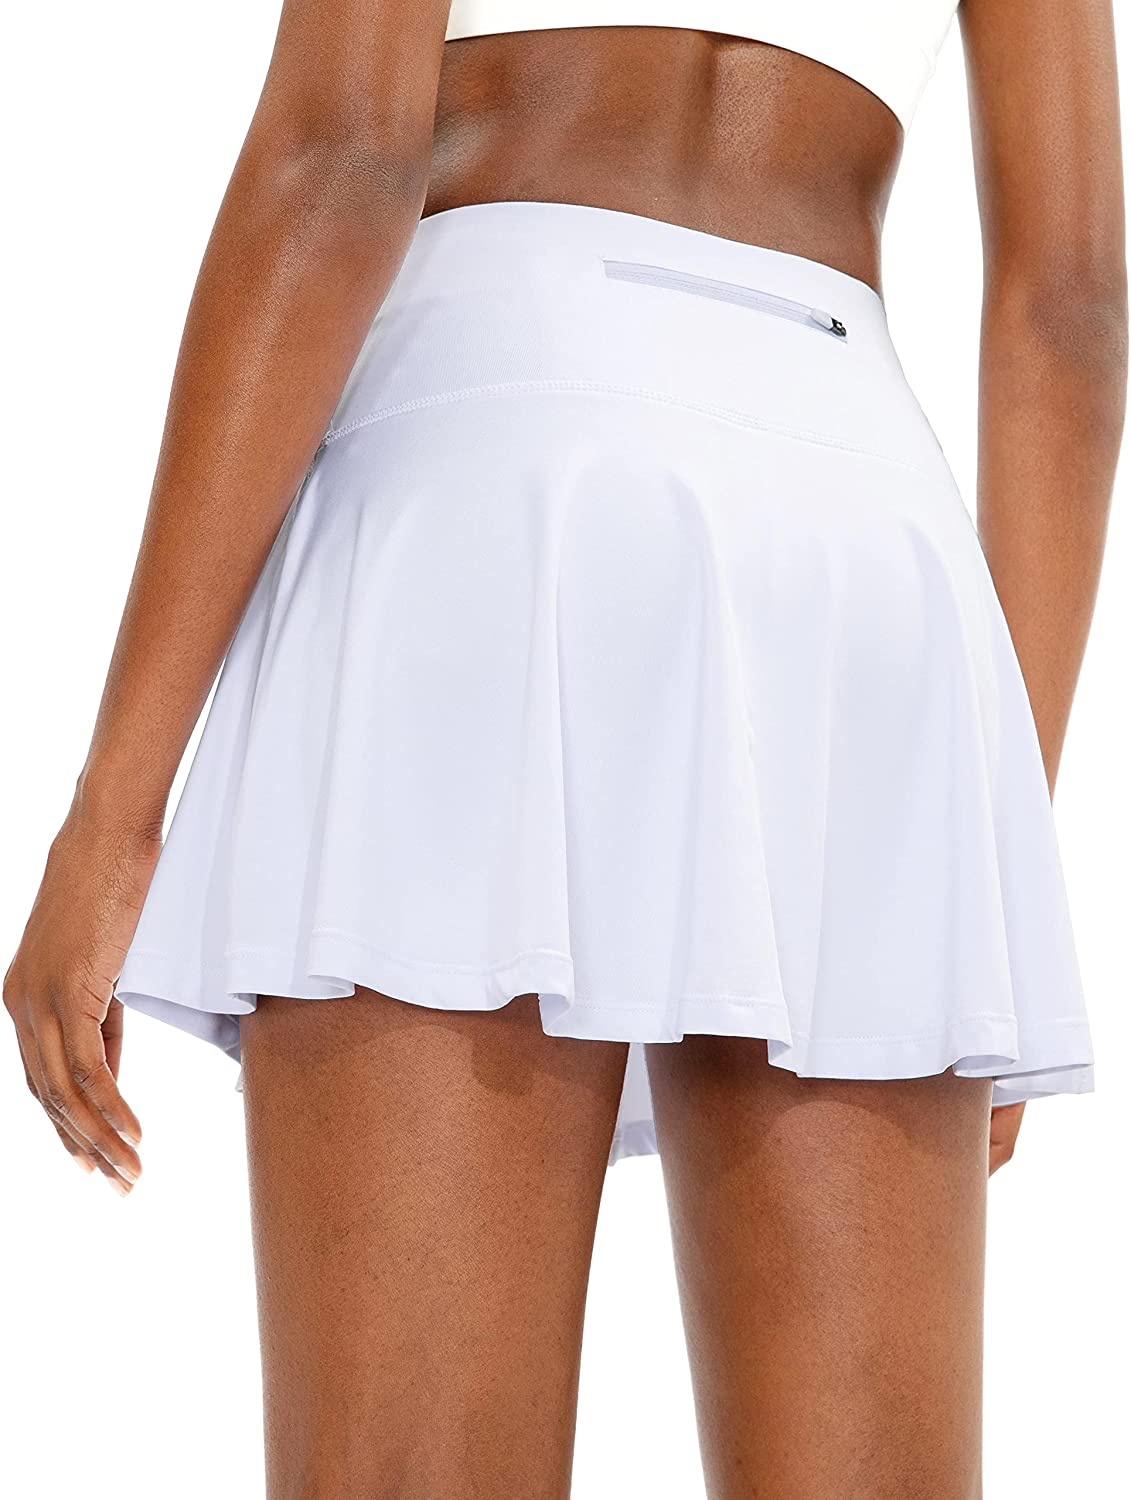 SANTINY Pleated Tennis Skirt for Women with 4 Pockets Women's High Waisted Athletic Golf Skorts Skirts for Running Casual : Clothing, Shoes & Jewelry